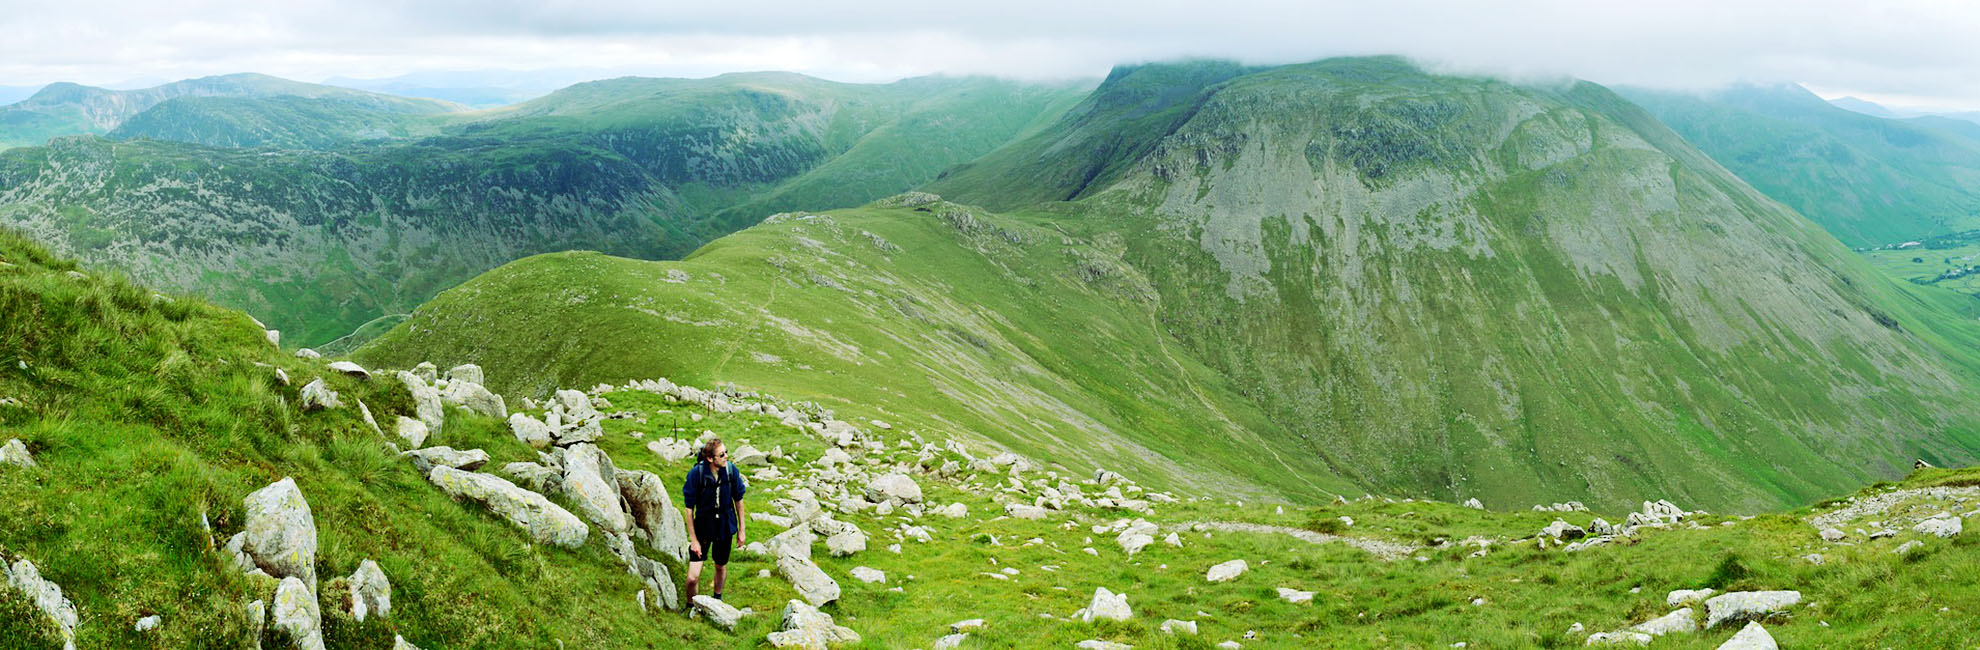 A man hiking up the mountains in the Lake District